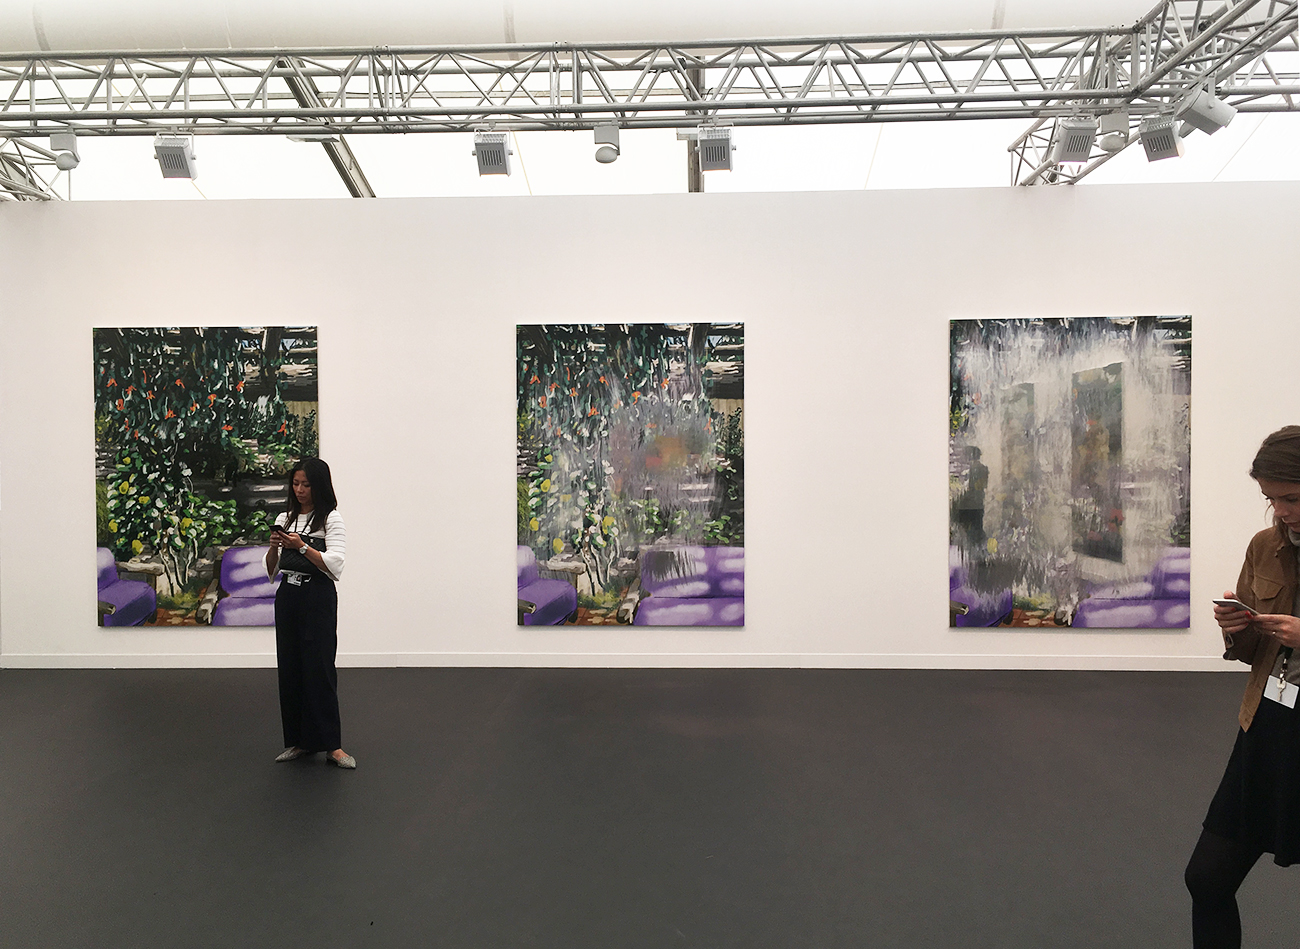 Urs Fischer, large-scale triptychs made by hand using a digital substrate, then silkscreened onto aluminium panels, Gagosian